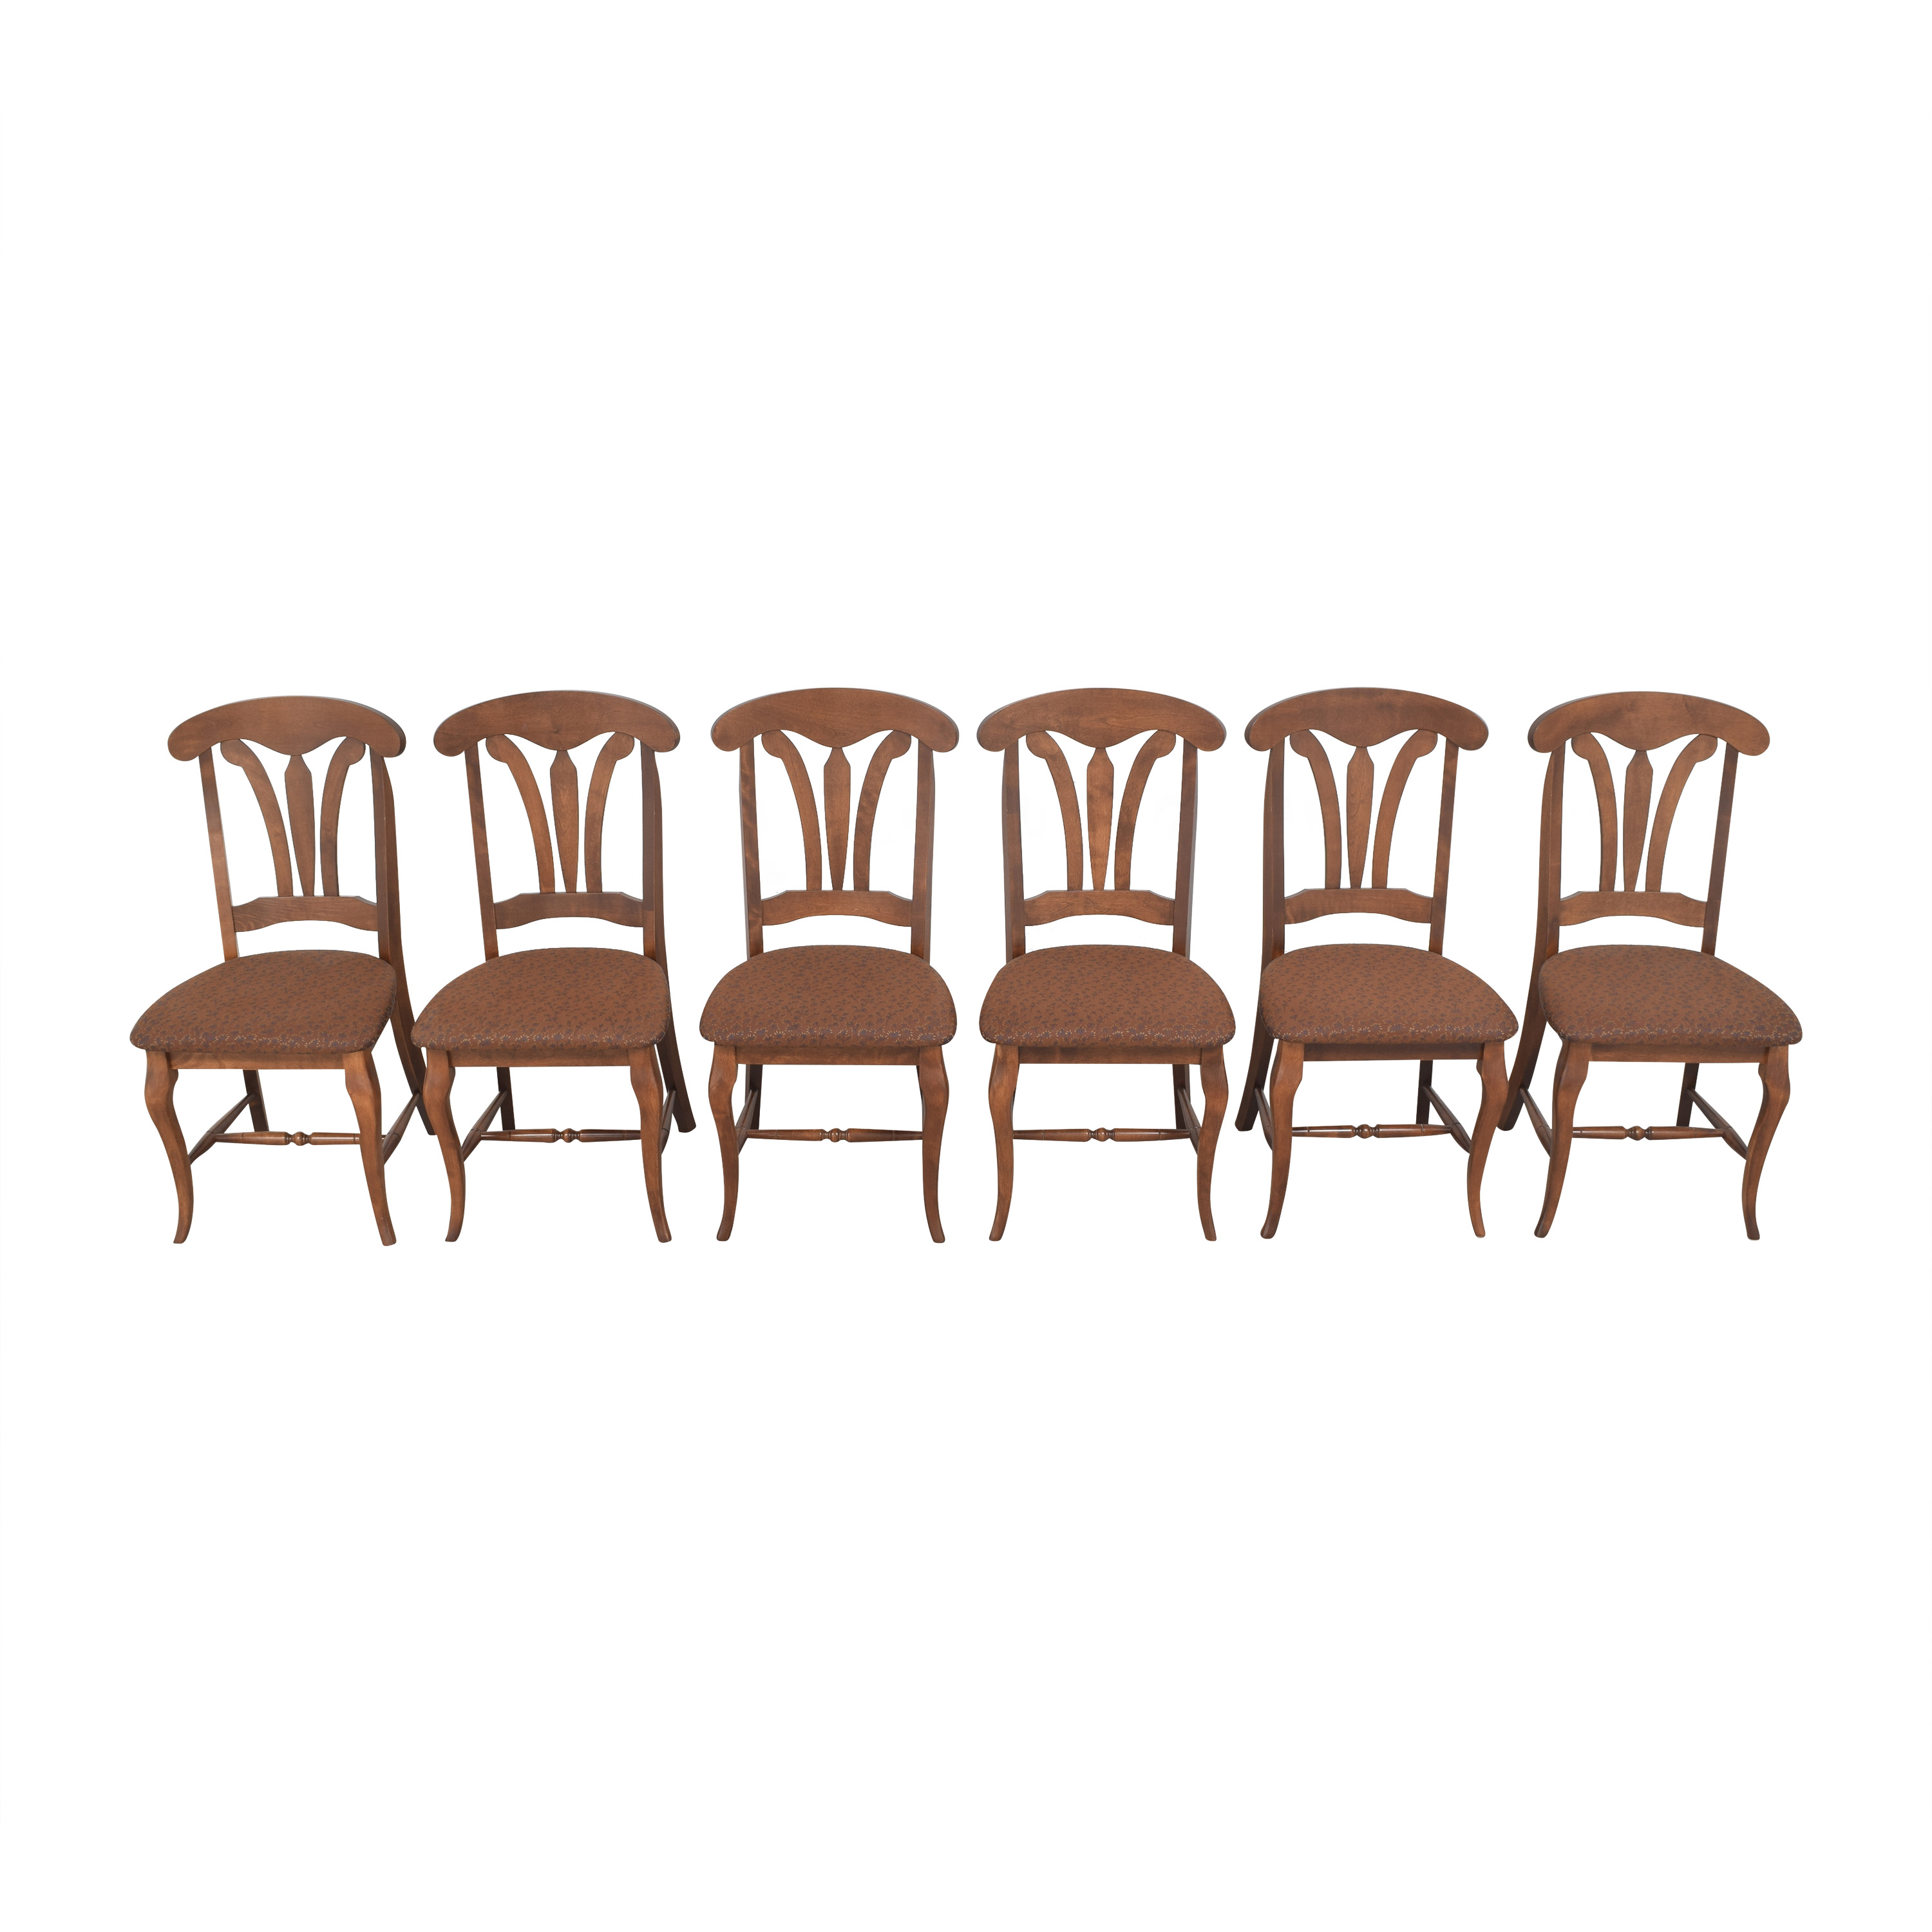 buy Canadel Canadel Upholstered Dining Chairs online